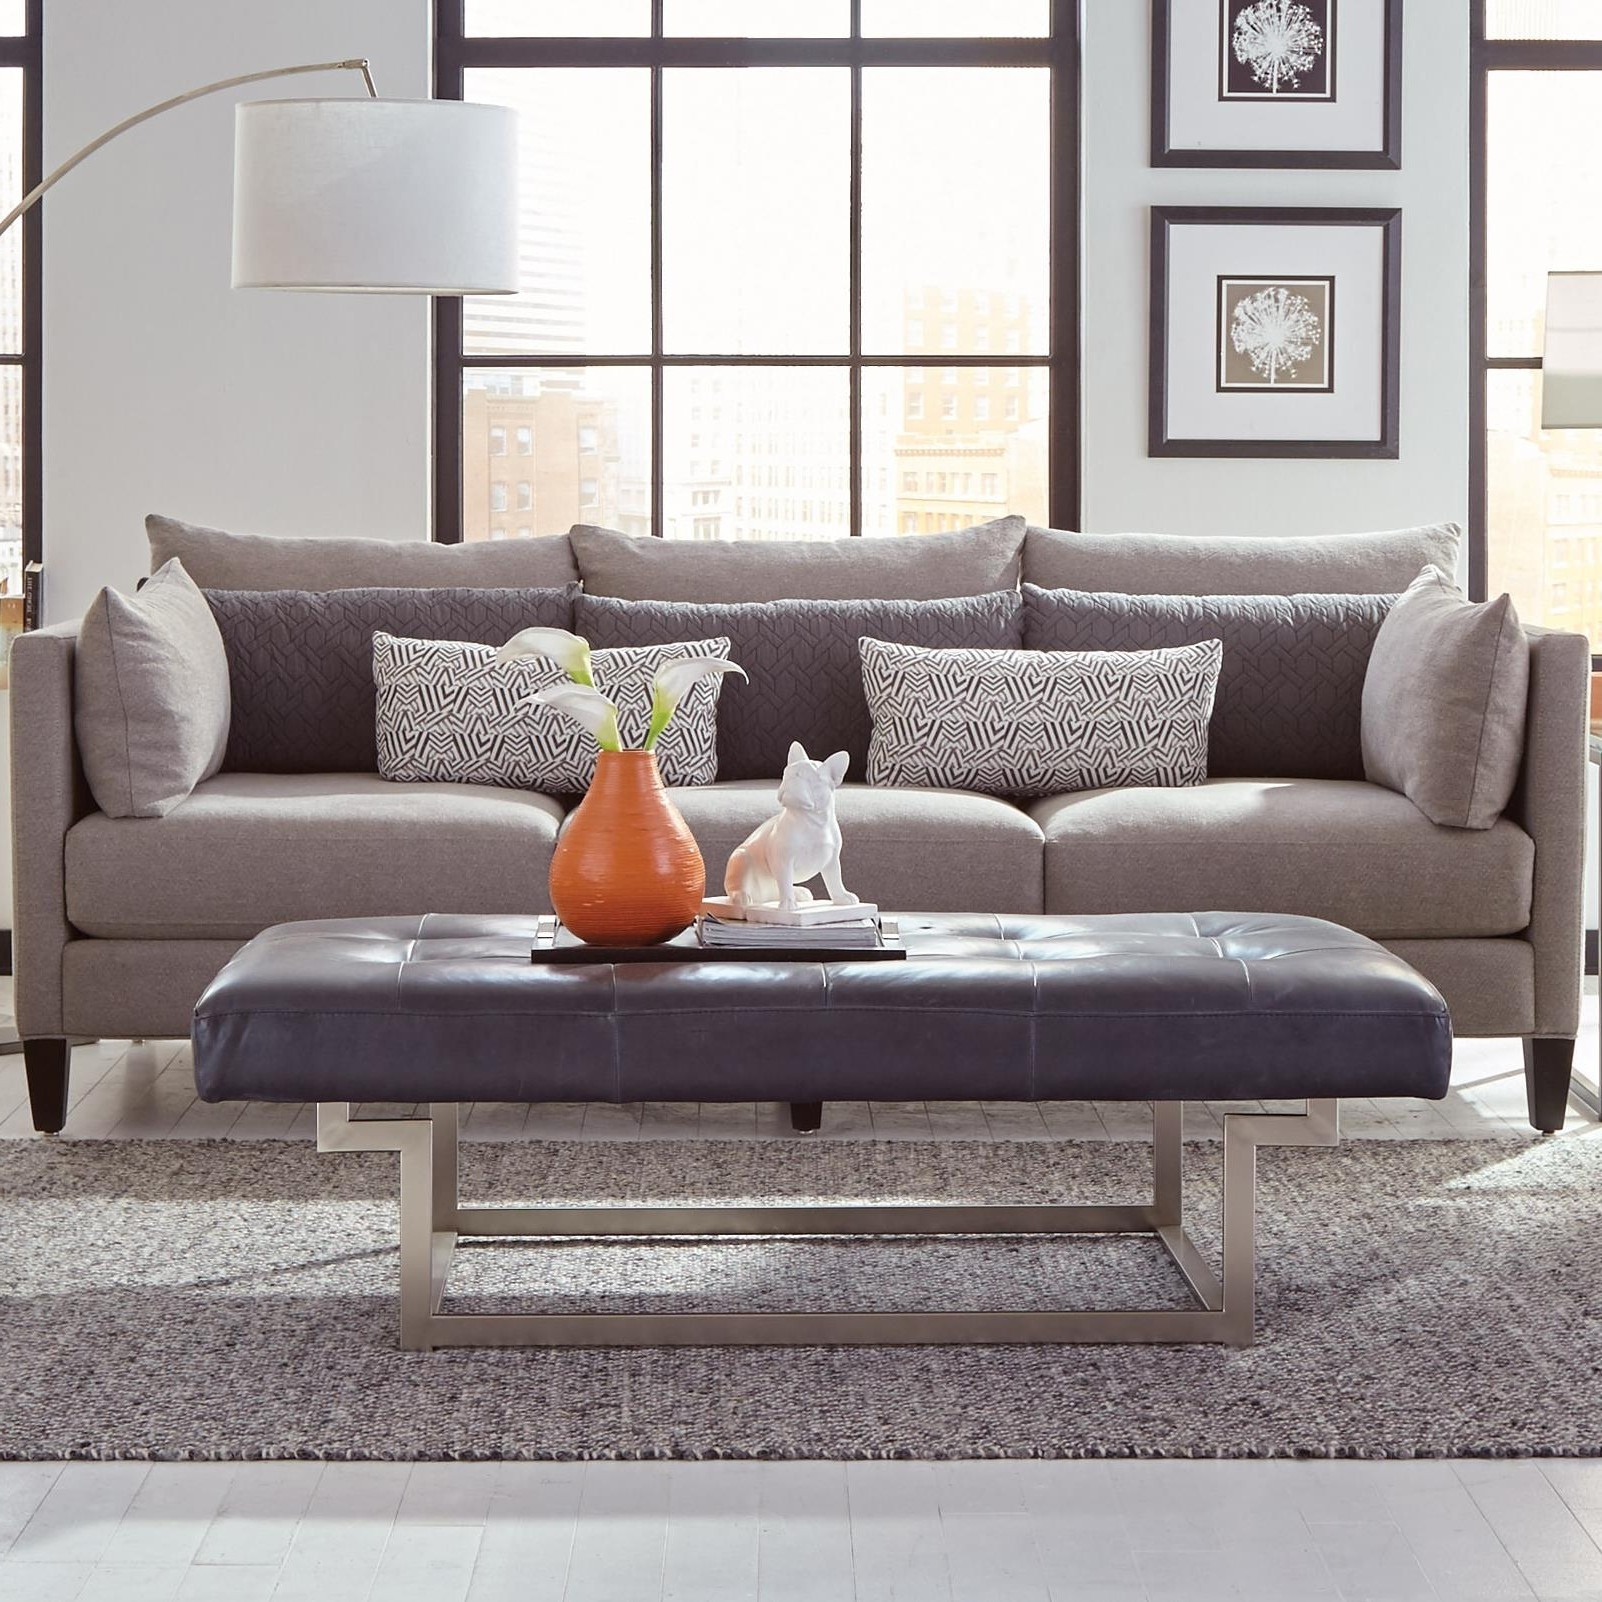 Windsor Sofas Within Best And Newest Windsor Transitional Estate Sofajonathan Louis – Can't Afford (View 20 of 20)